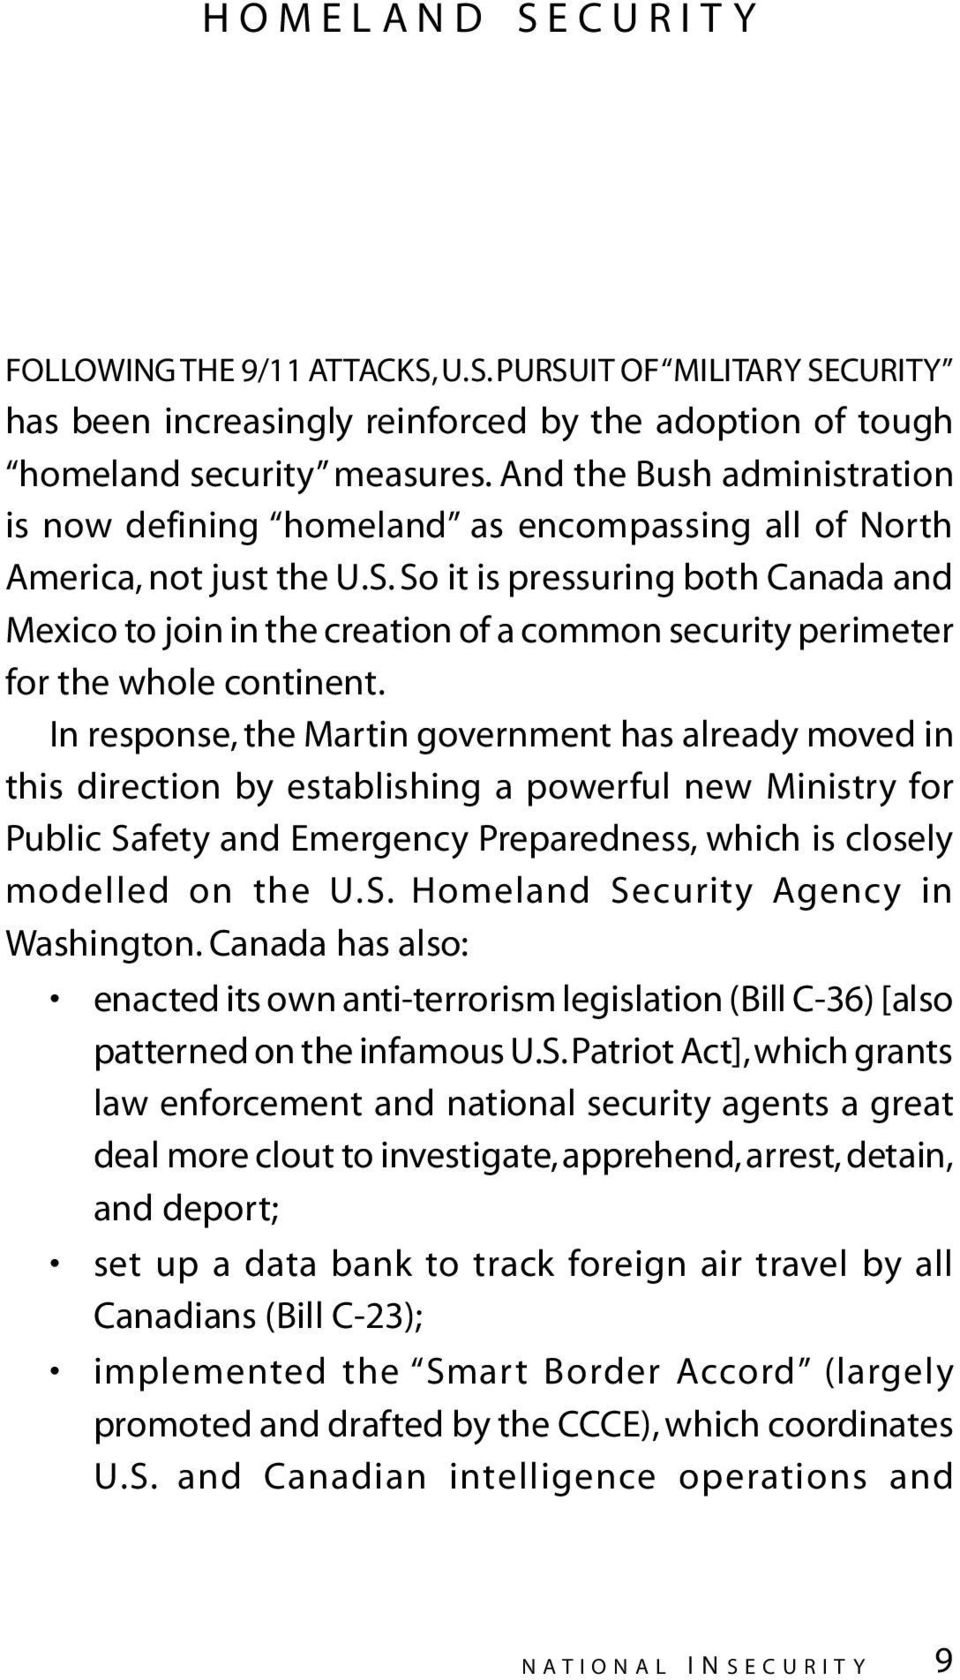 So it is pressuring both Canada and Mexico to join in the creation of a common security perimeter for the whole continent.